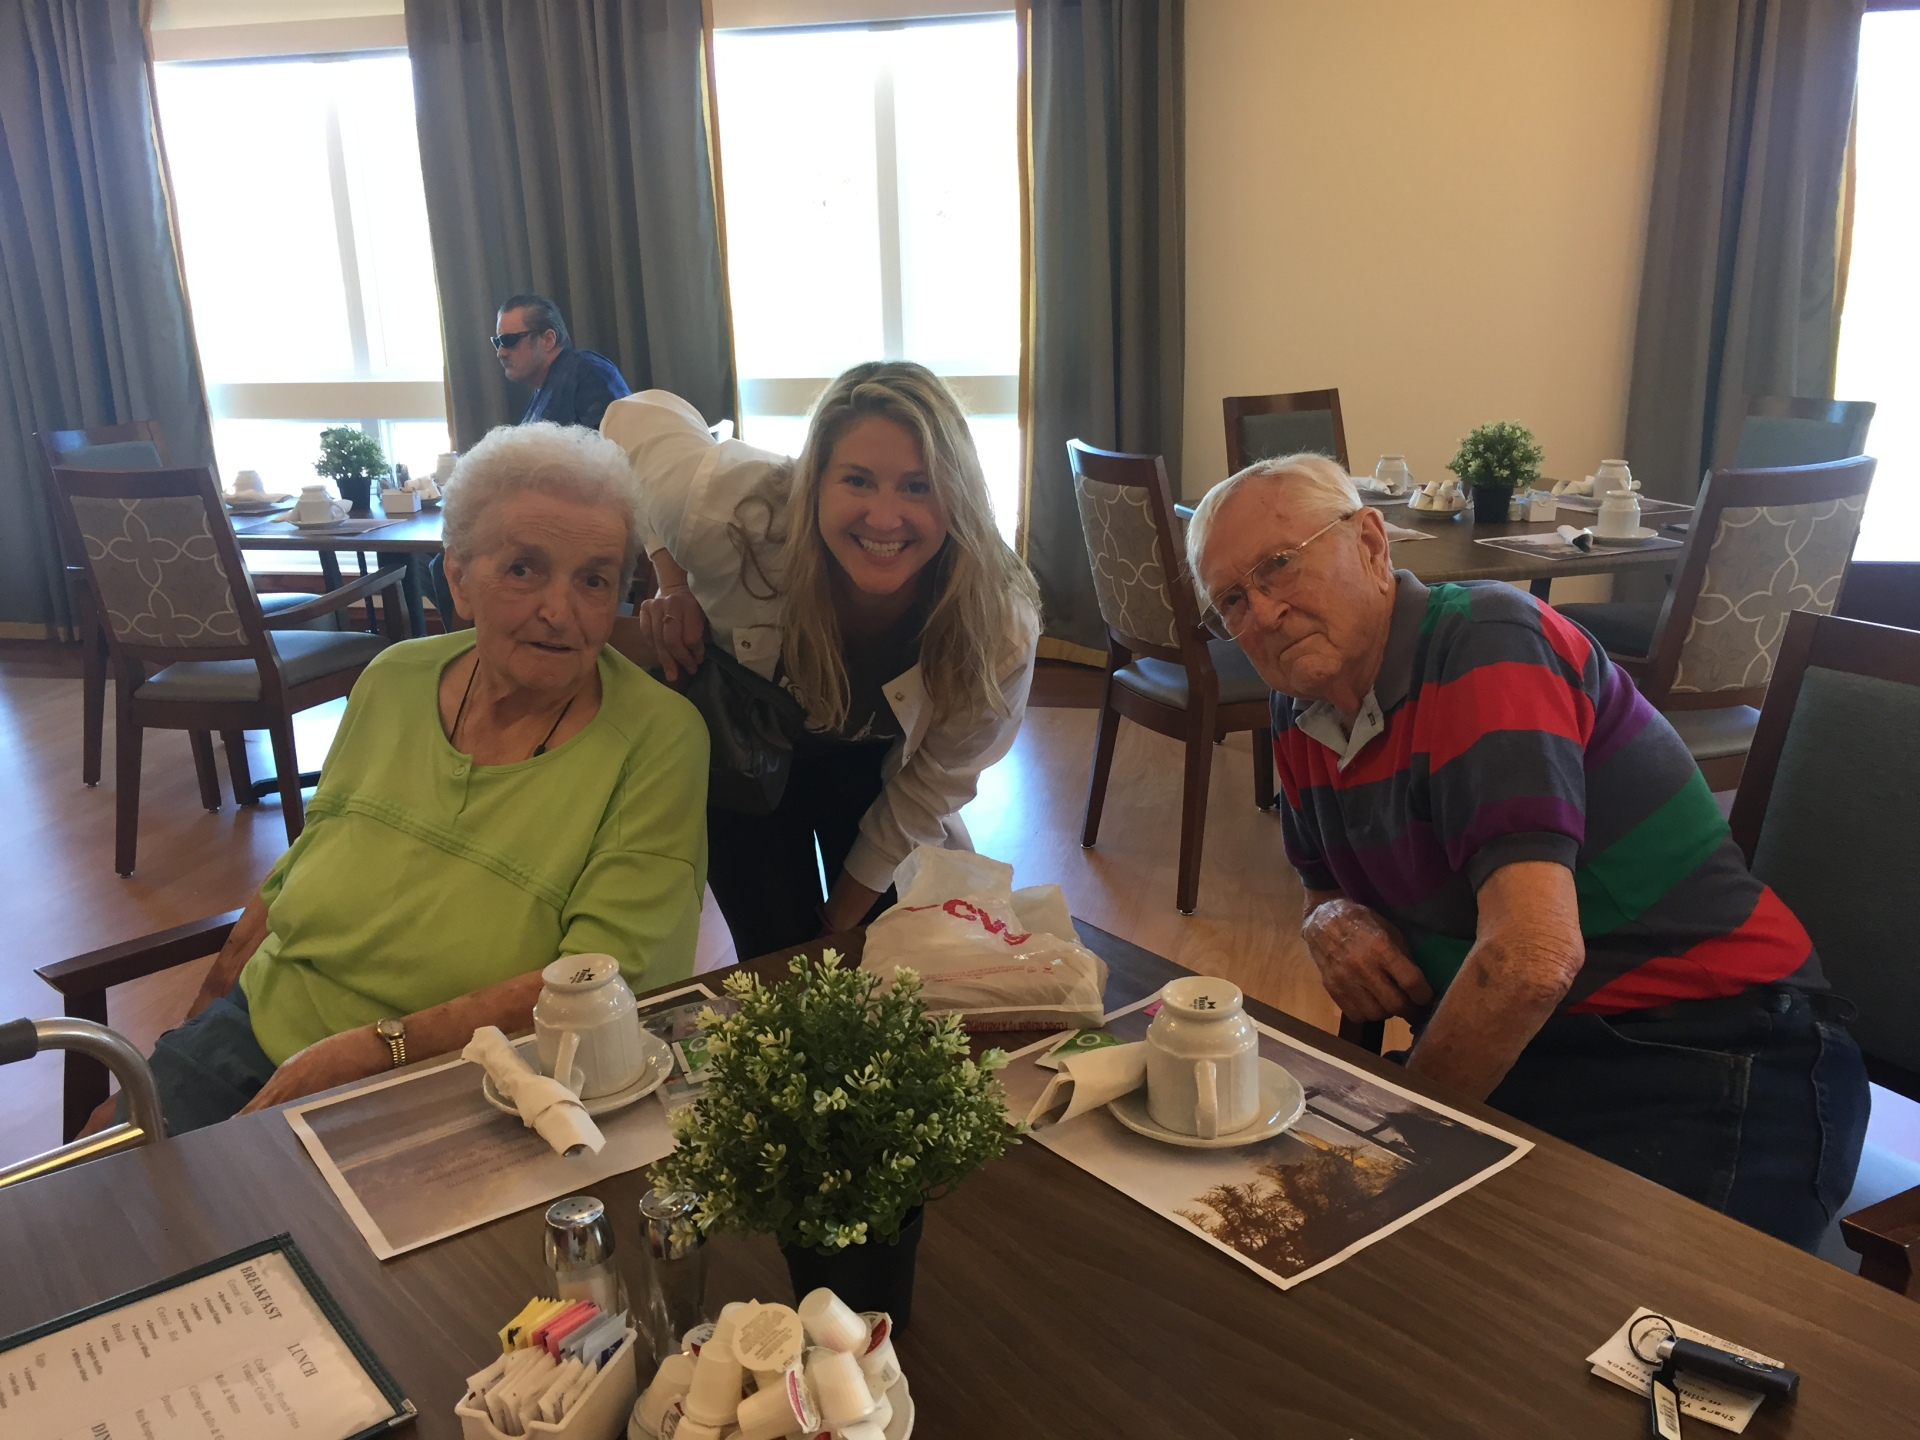 Megan Norman, RDH with residents.